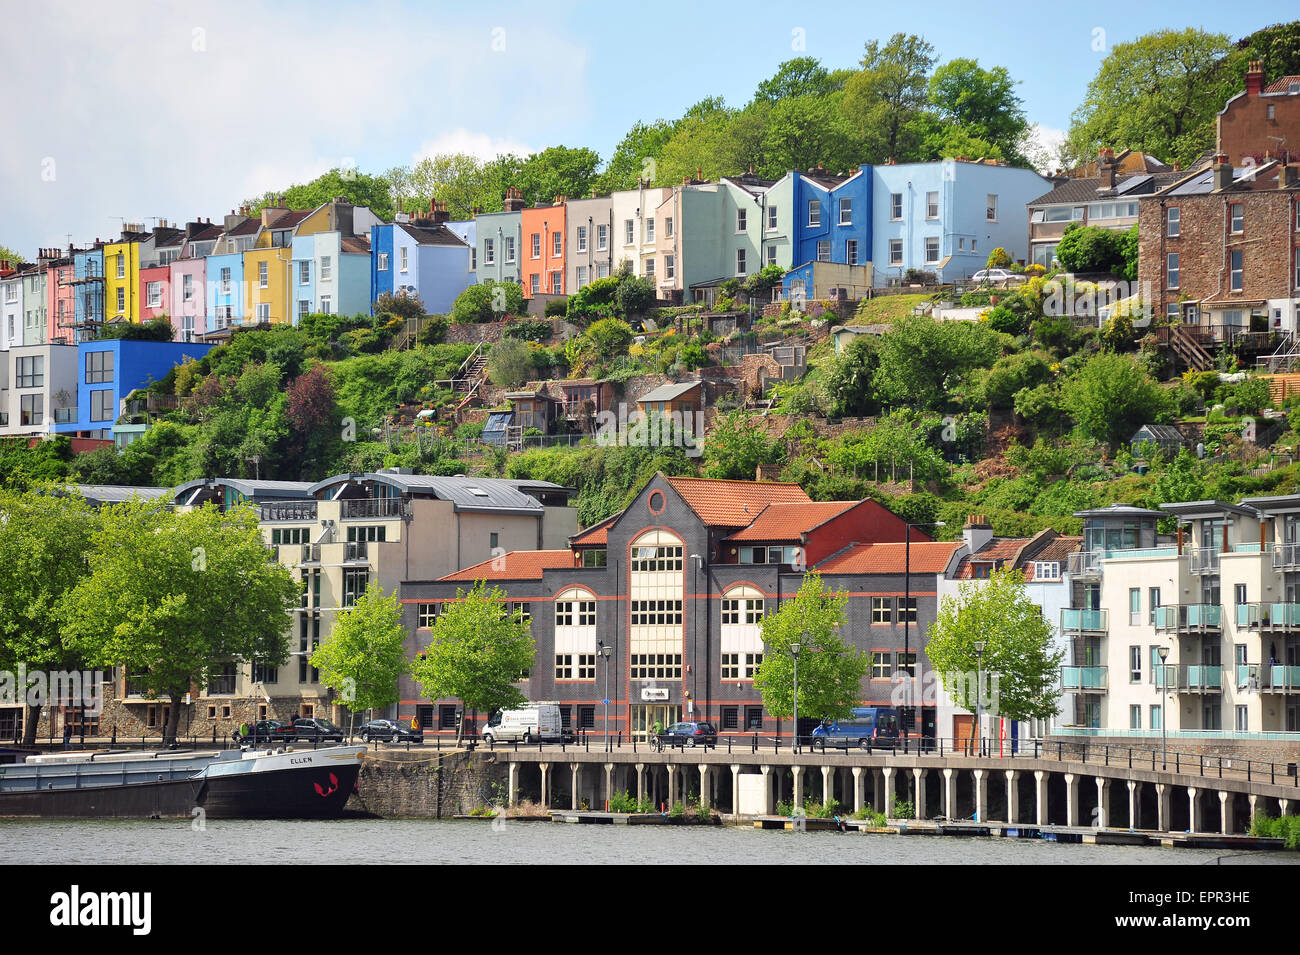 Bristol Harbour with colourful houses in the background. - Stock Image